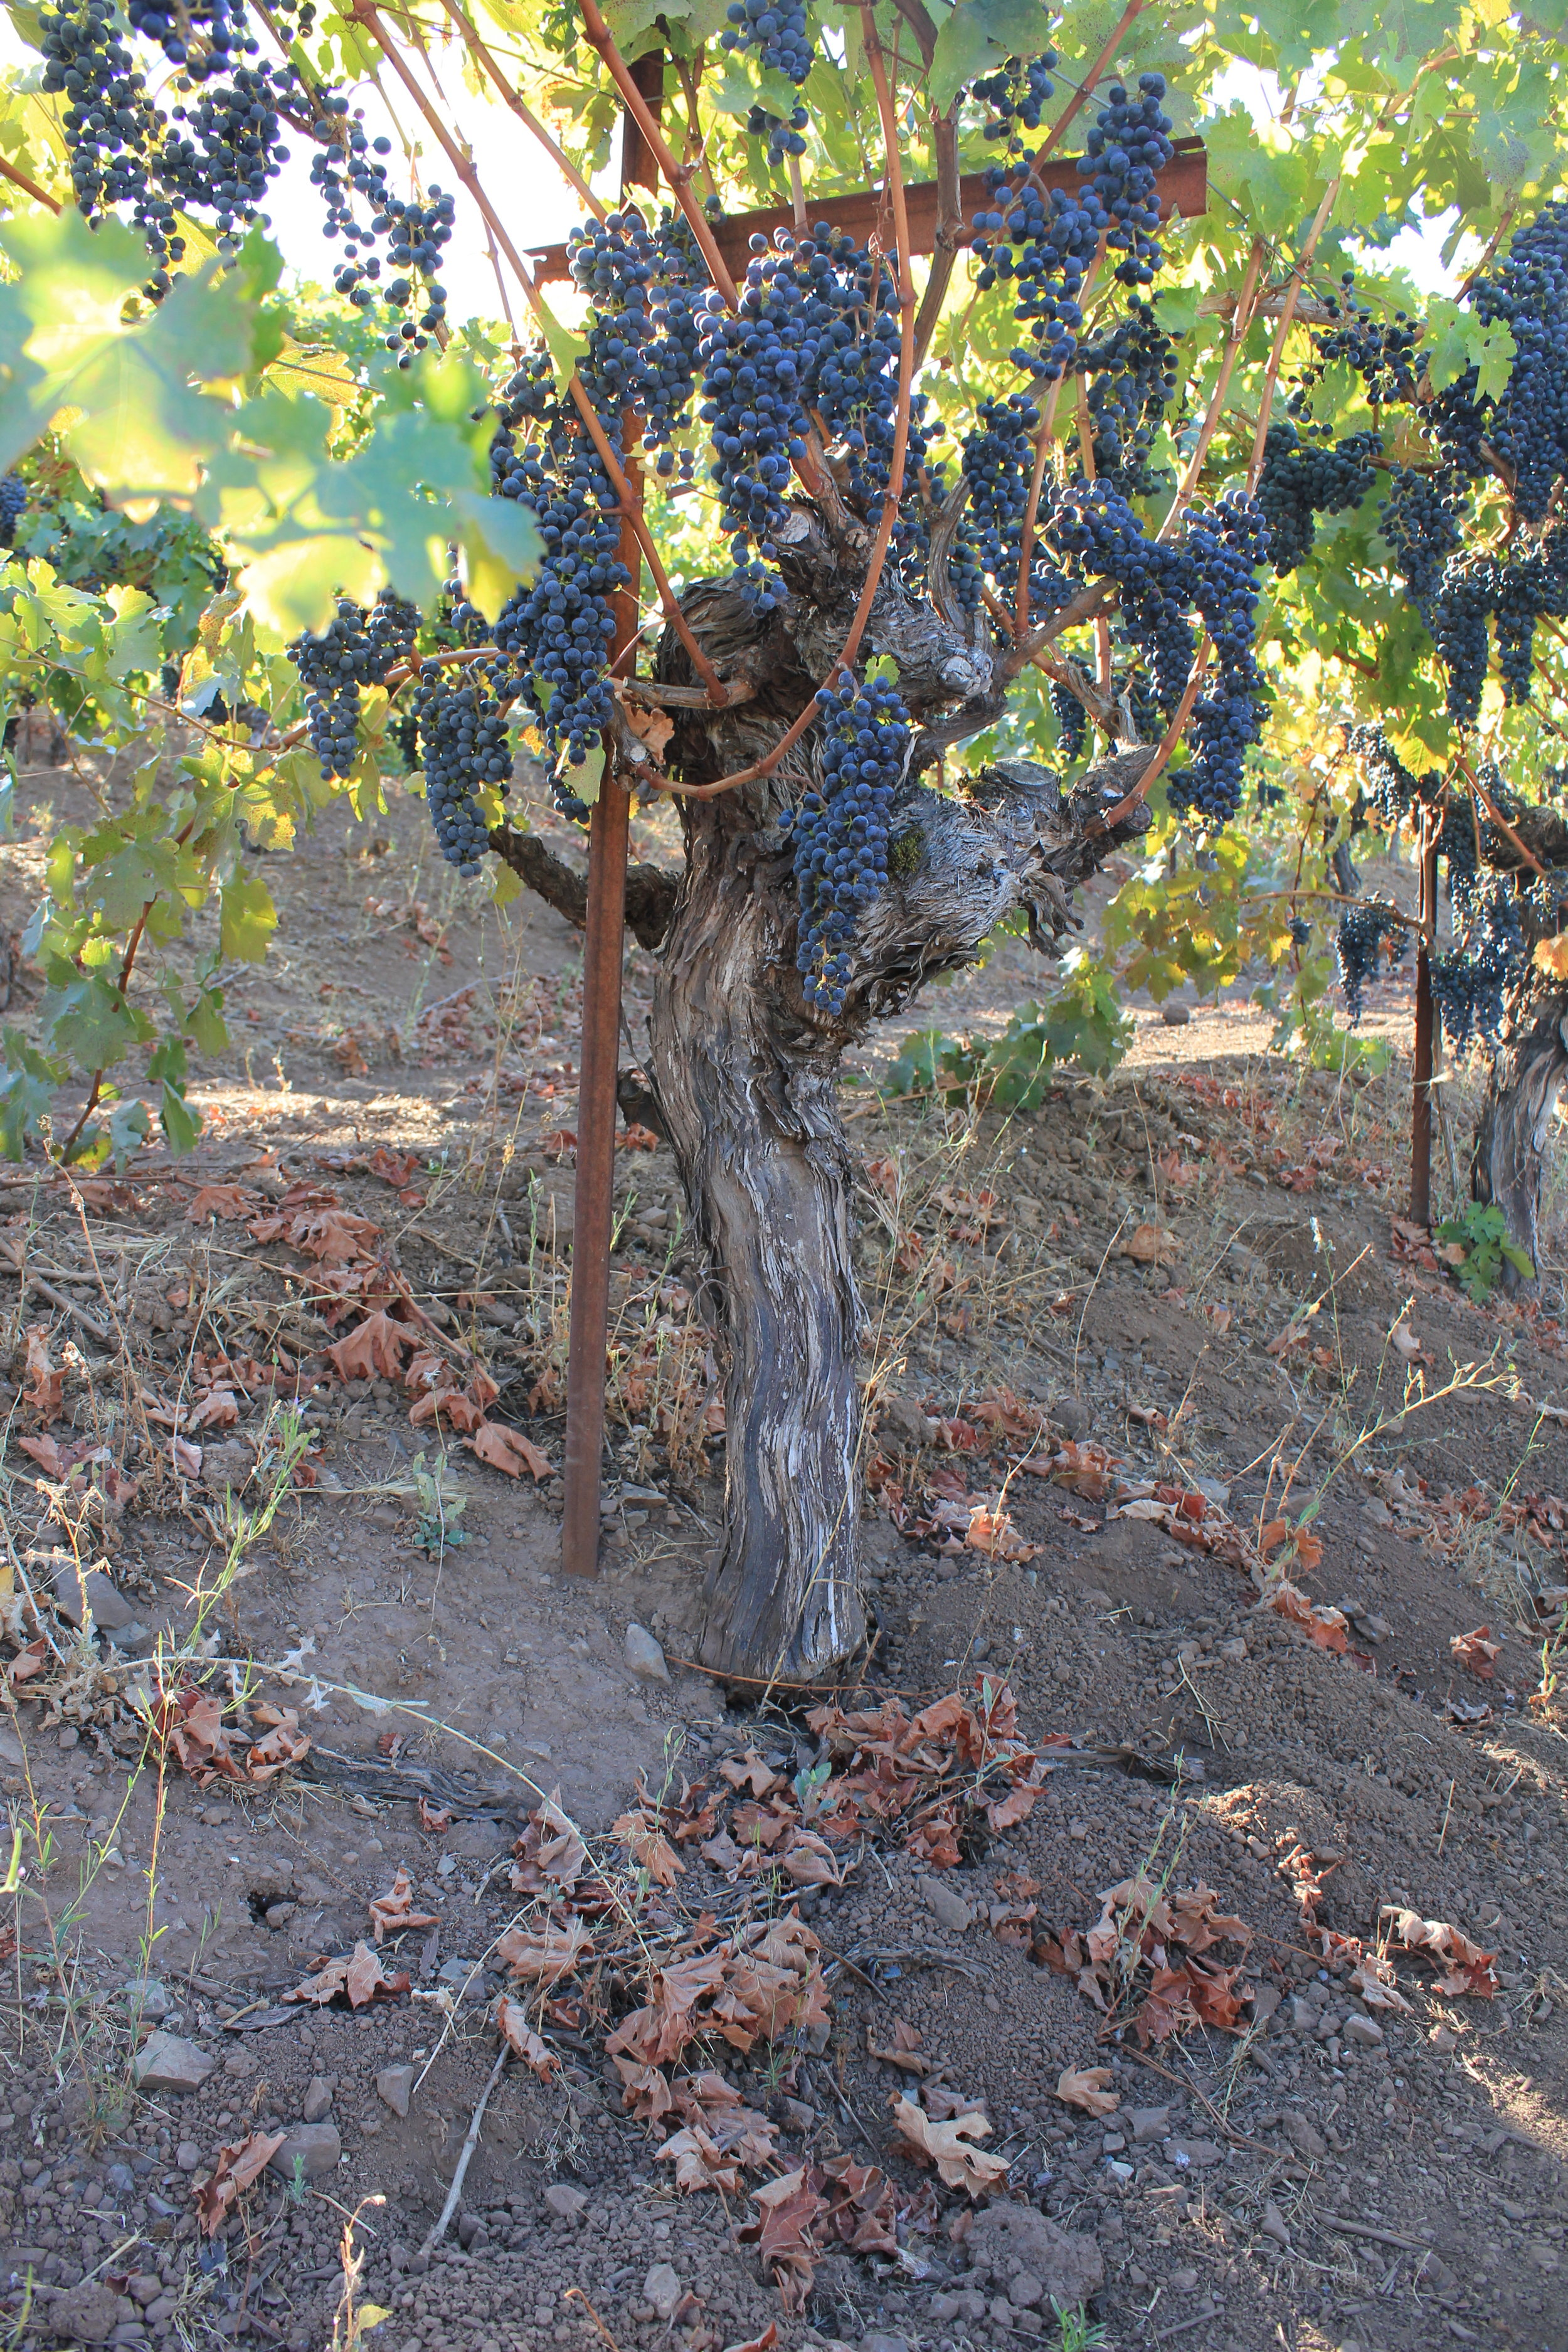 No drip lines in this vineyard!